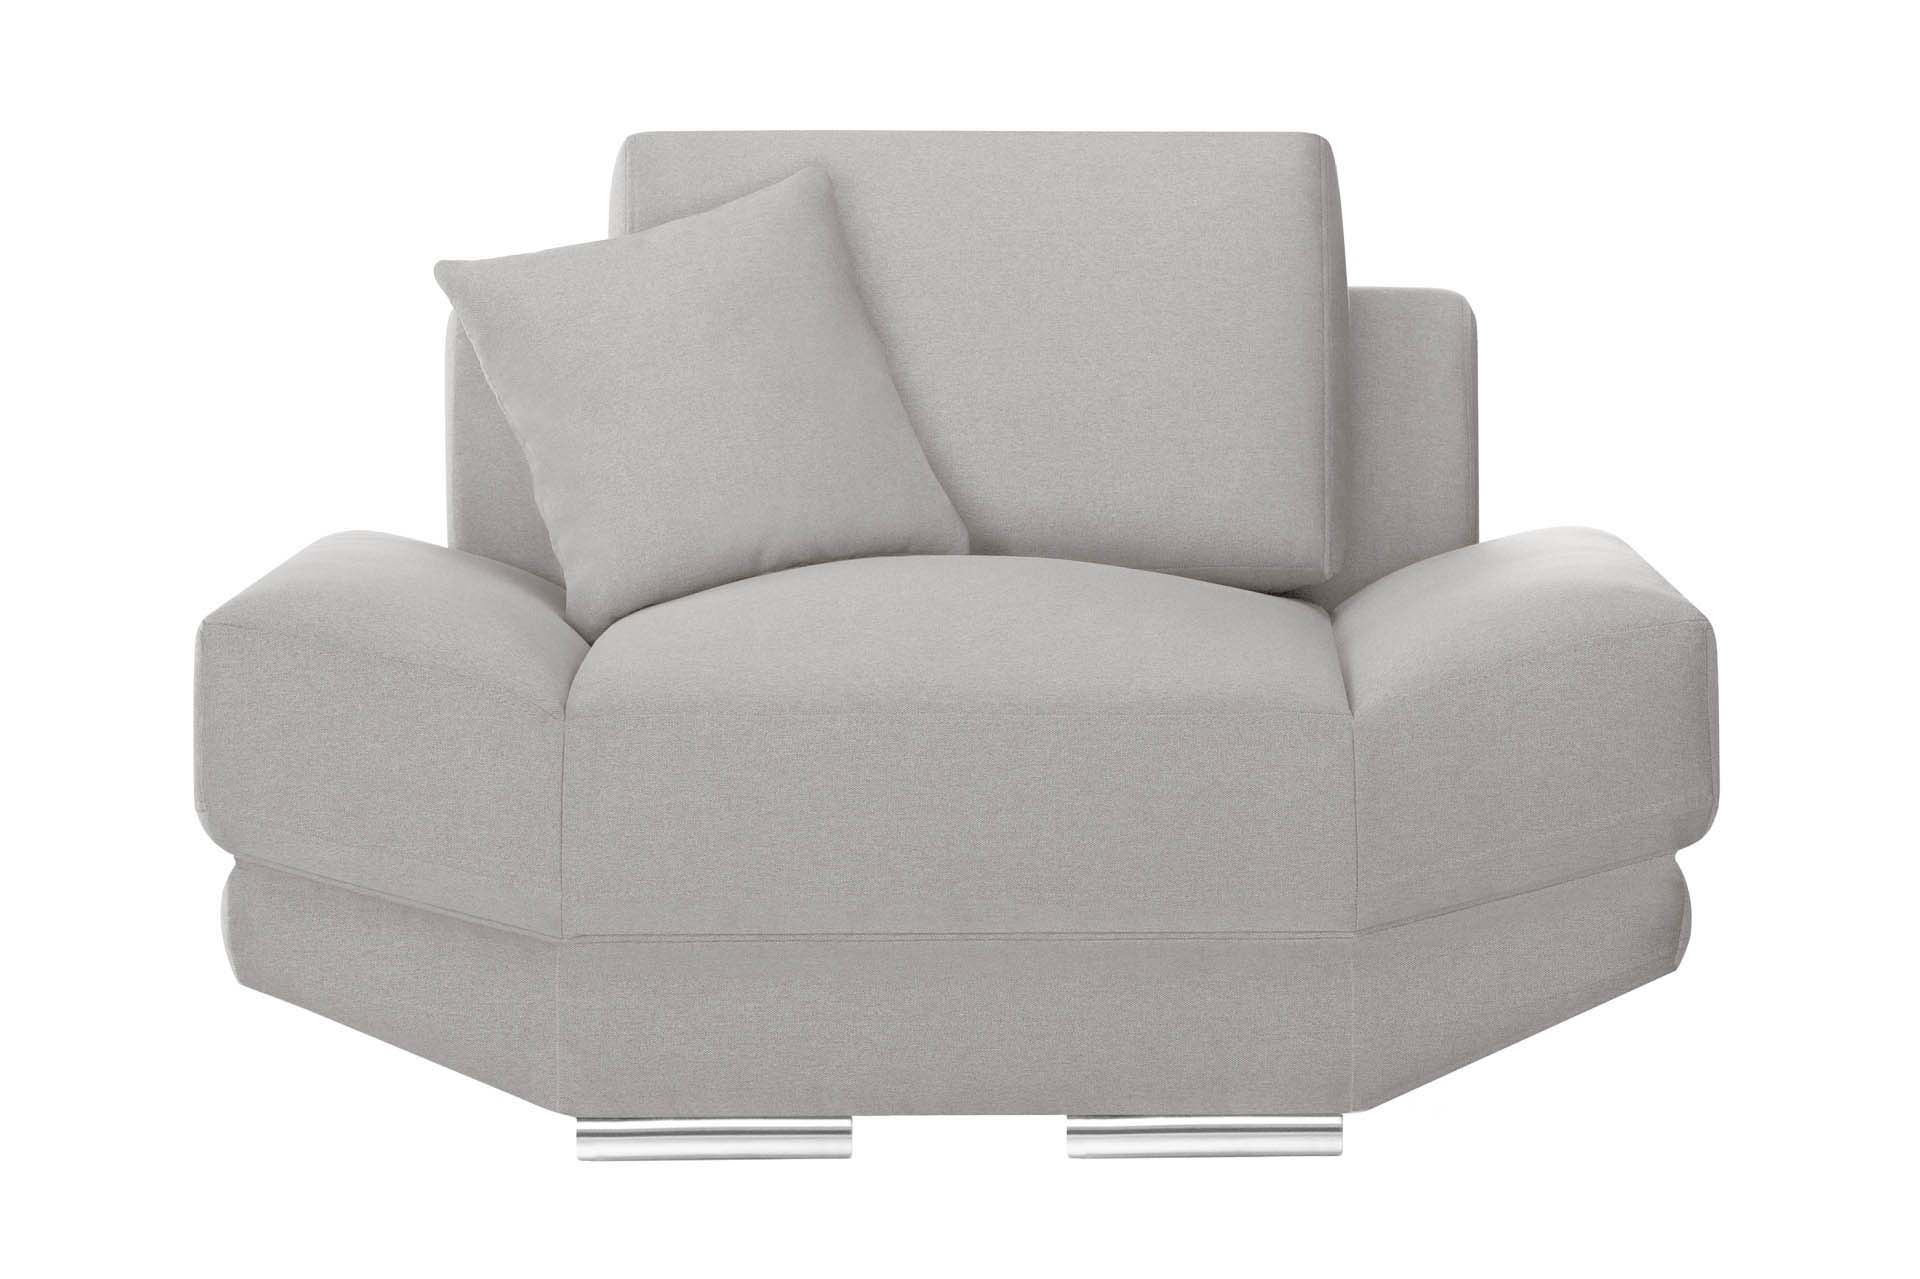 Fauteuil 1 place toucher lin taupe